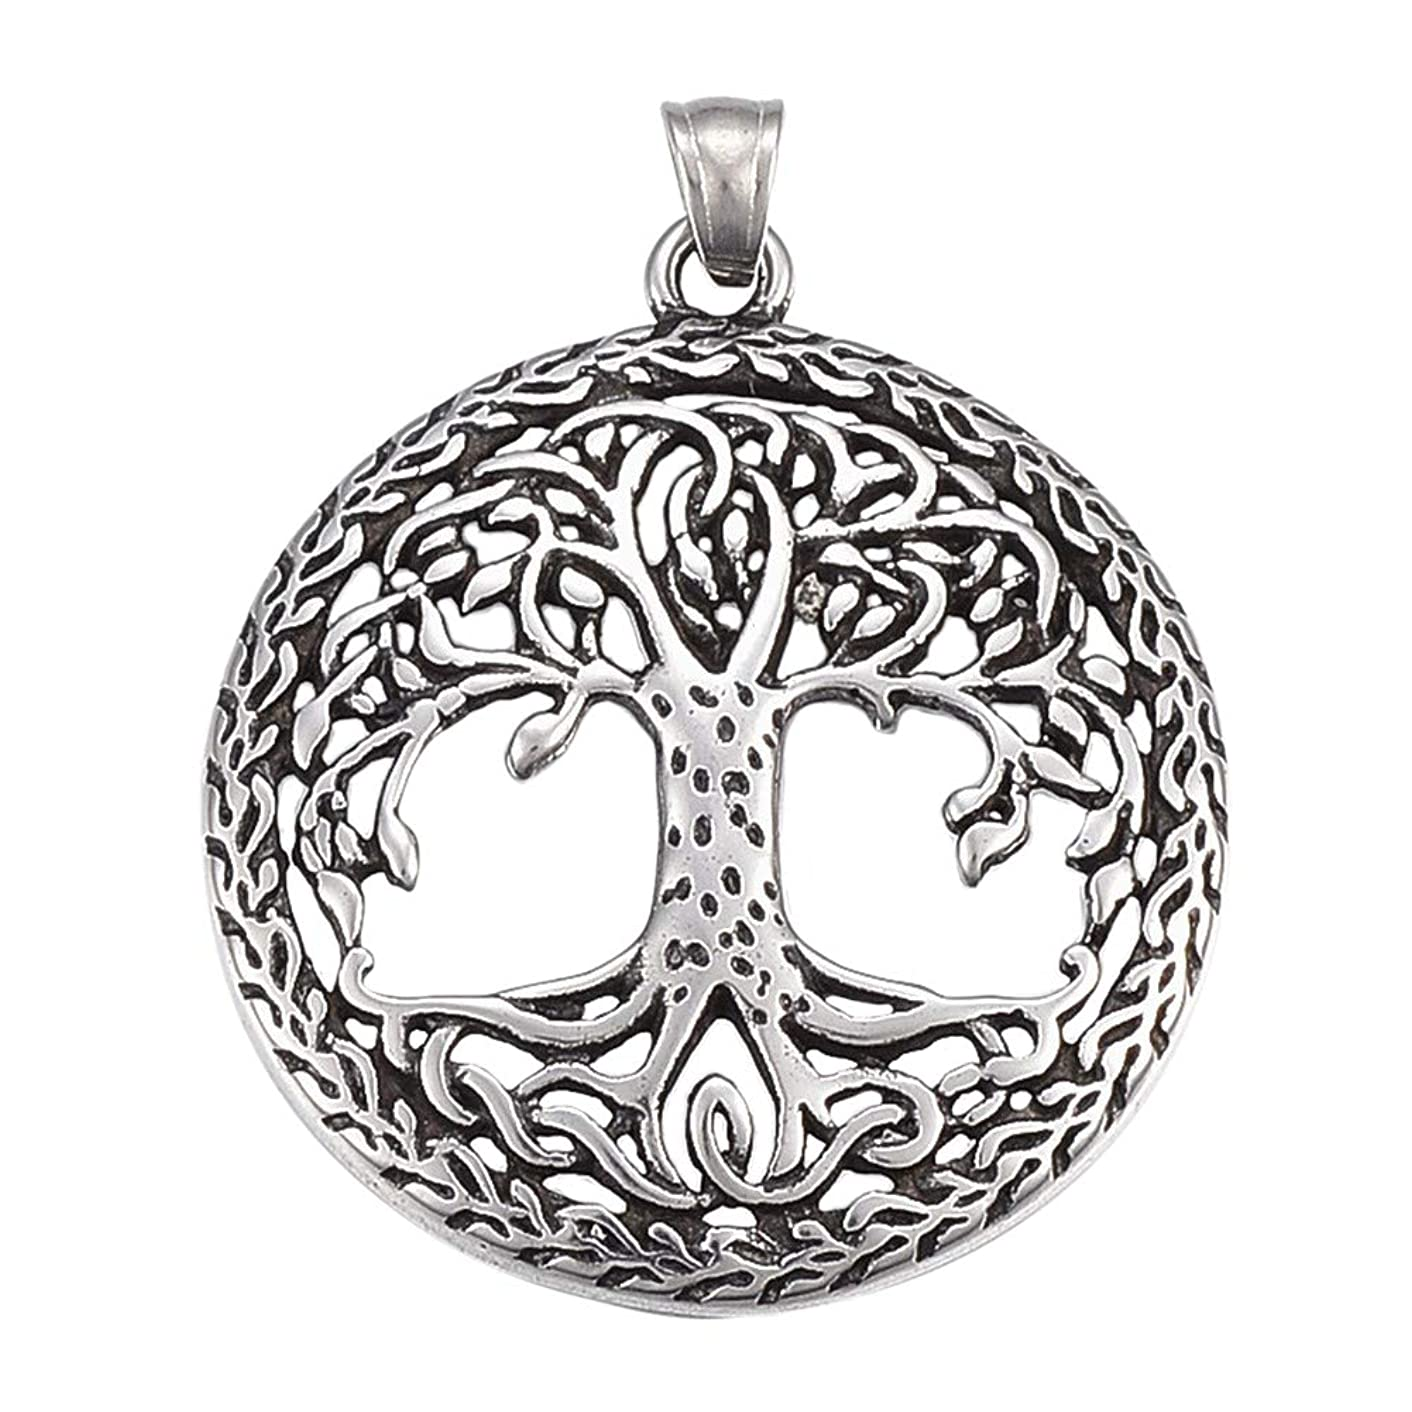 PH PandaHall 6pcs Stainless Steel Pendants Flat Round Tree Pattern Tree of Life Antique Silver for Bracelets Dangle Earrings Necklace Jewelry Making